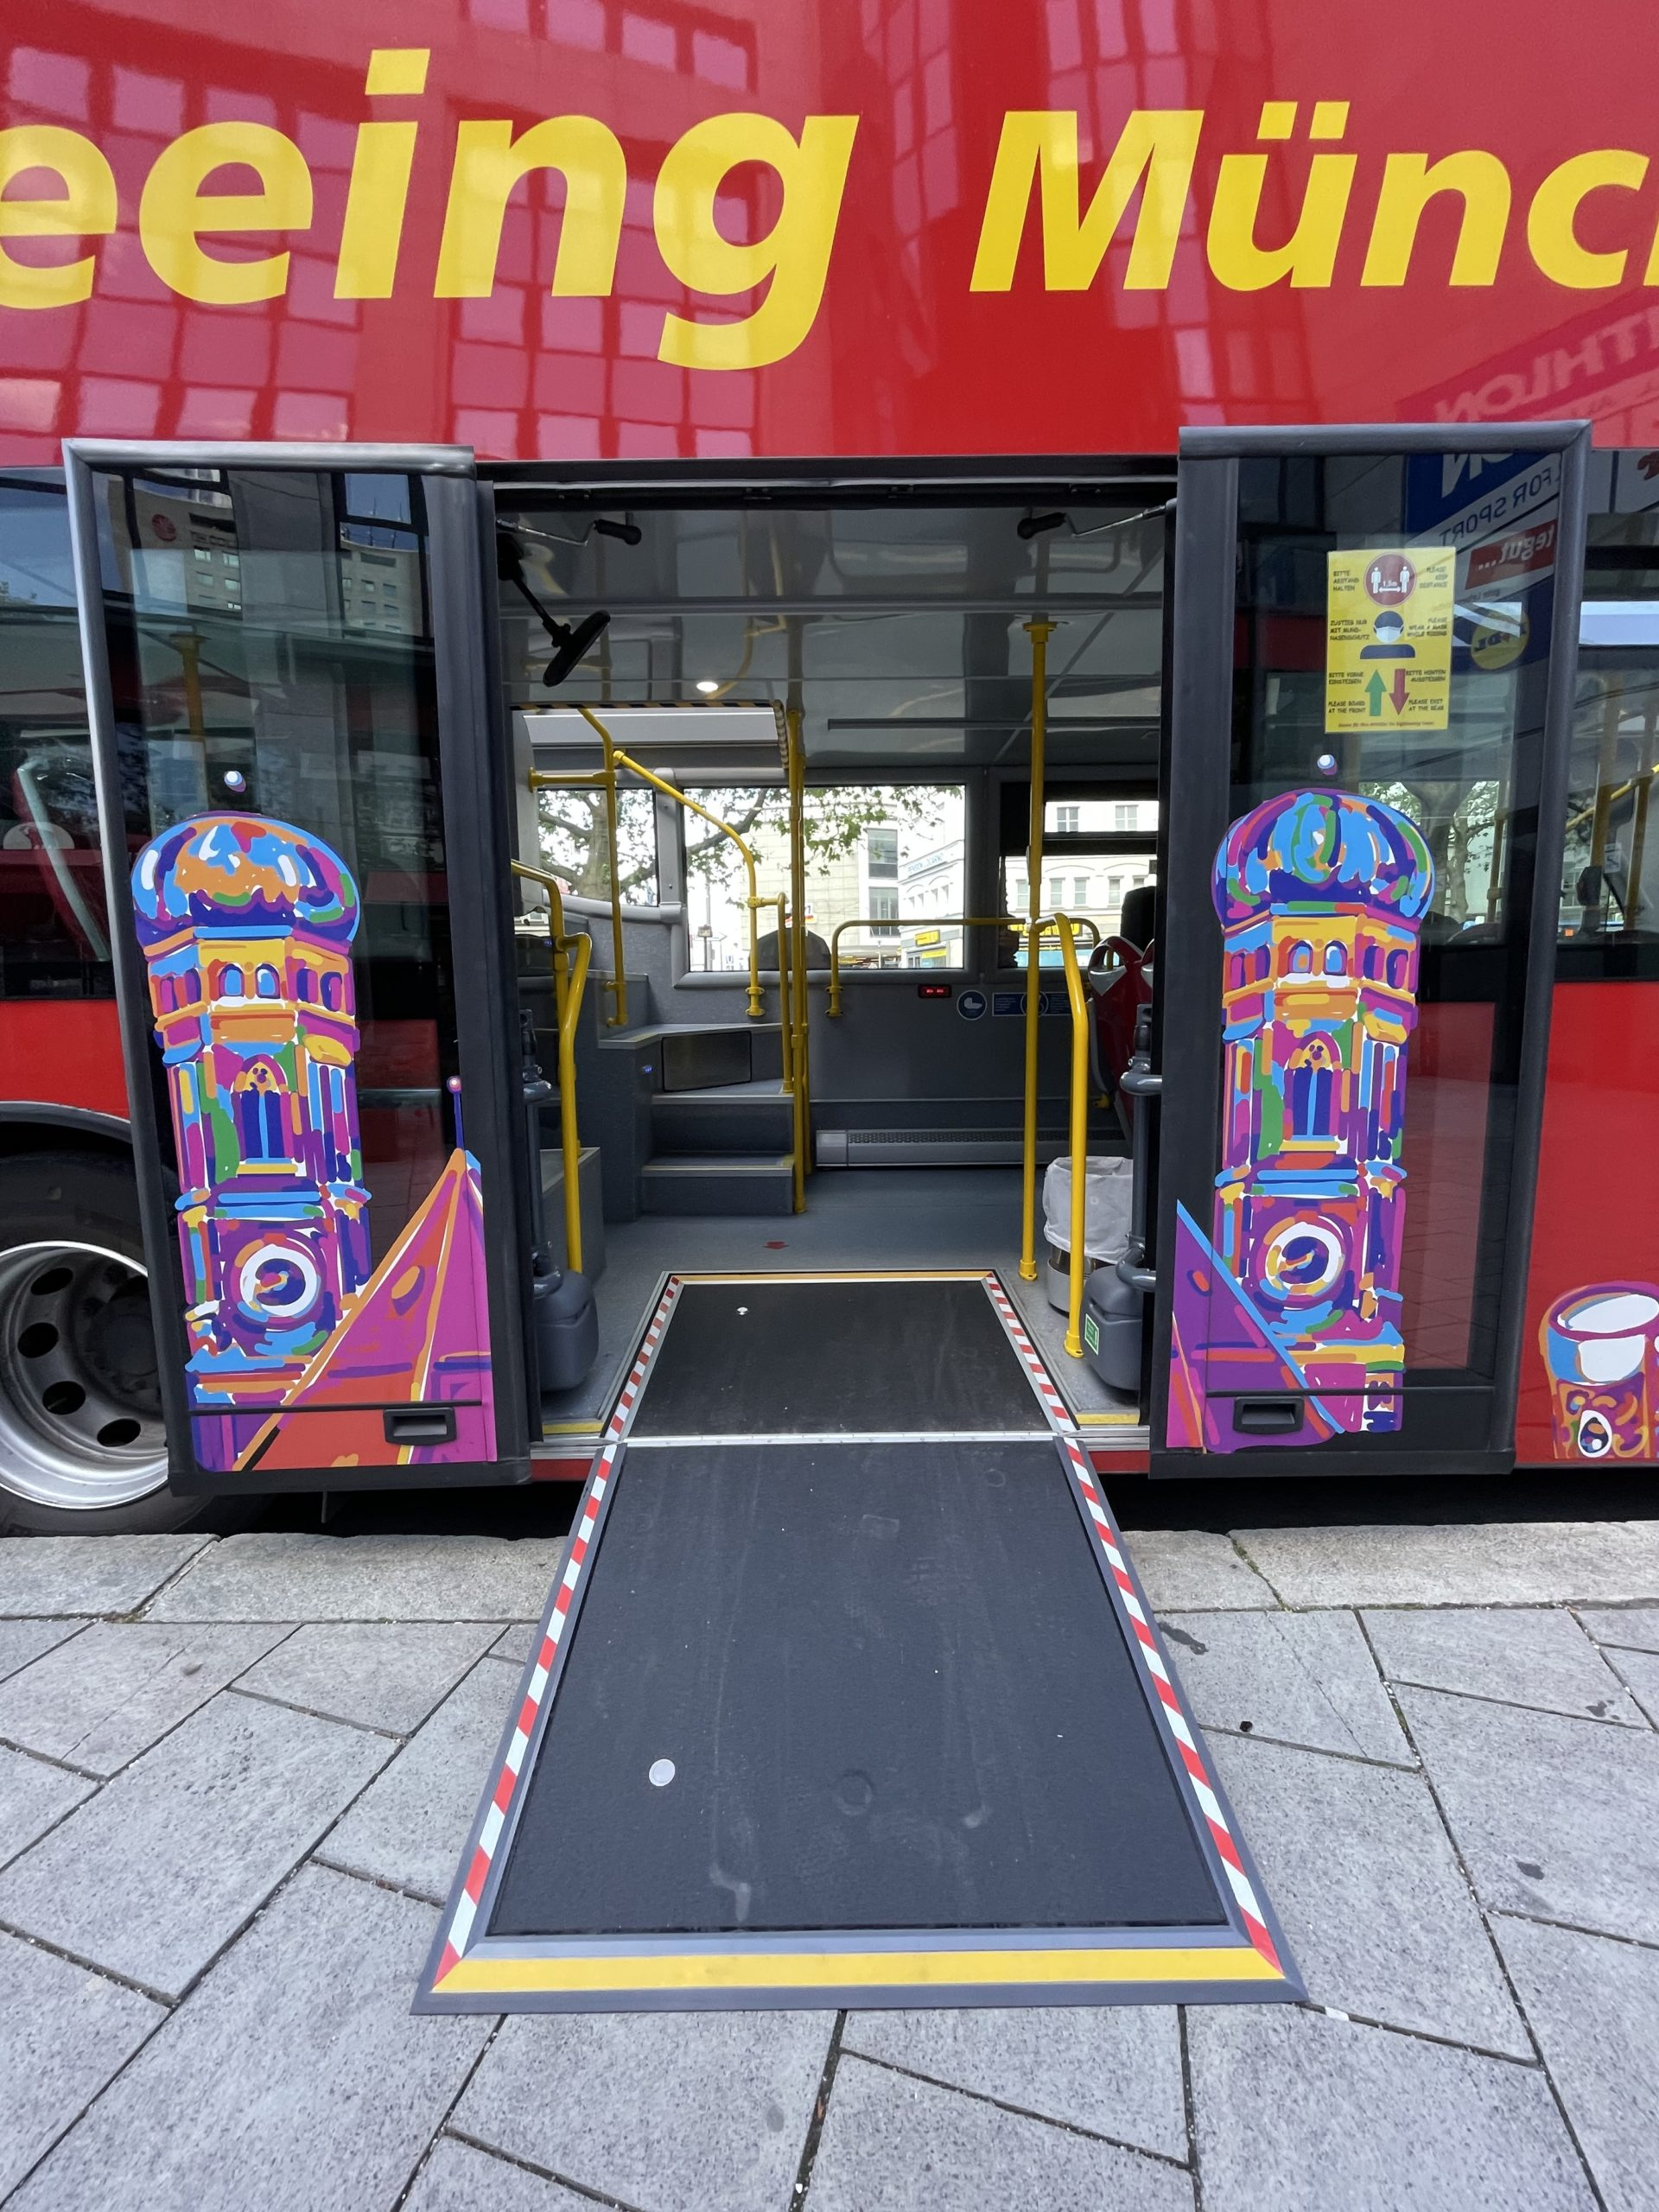 City Tours Munich | CitySightseeing Munich - Bus with wheelchair ramp for barrier-free access